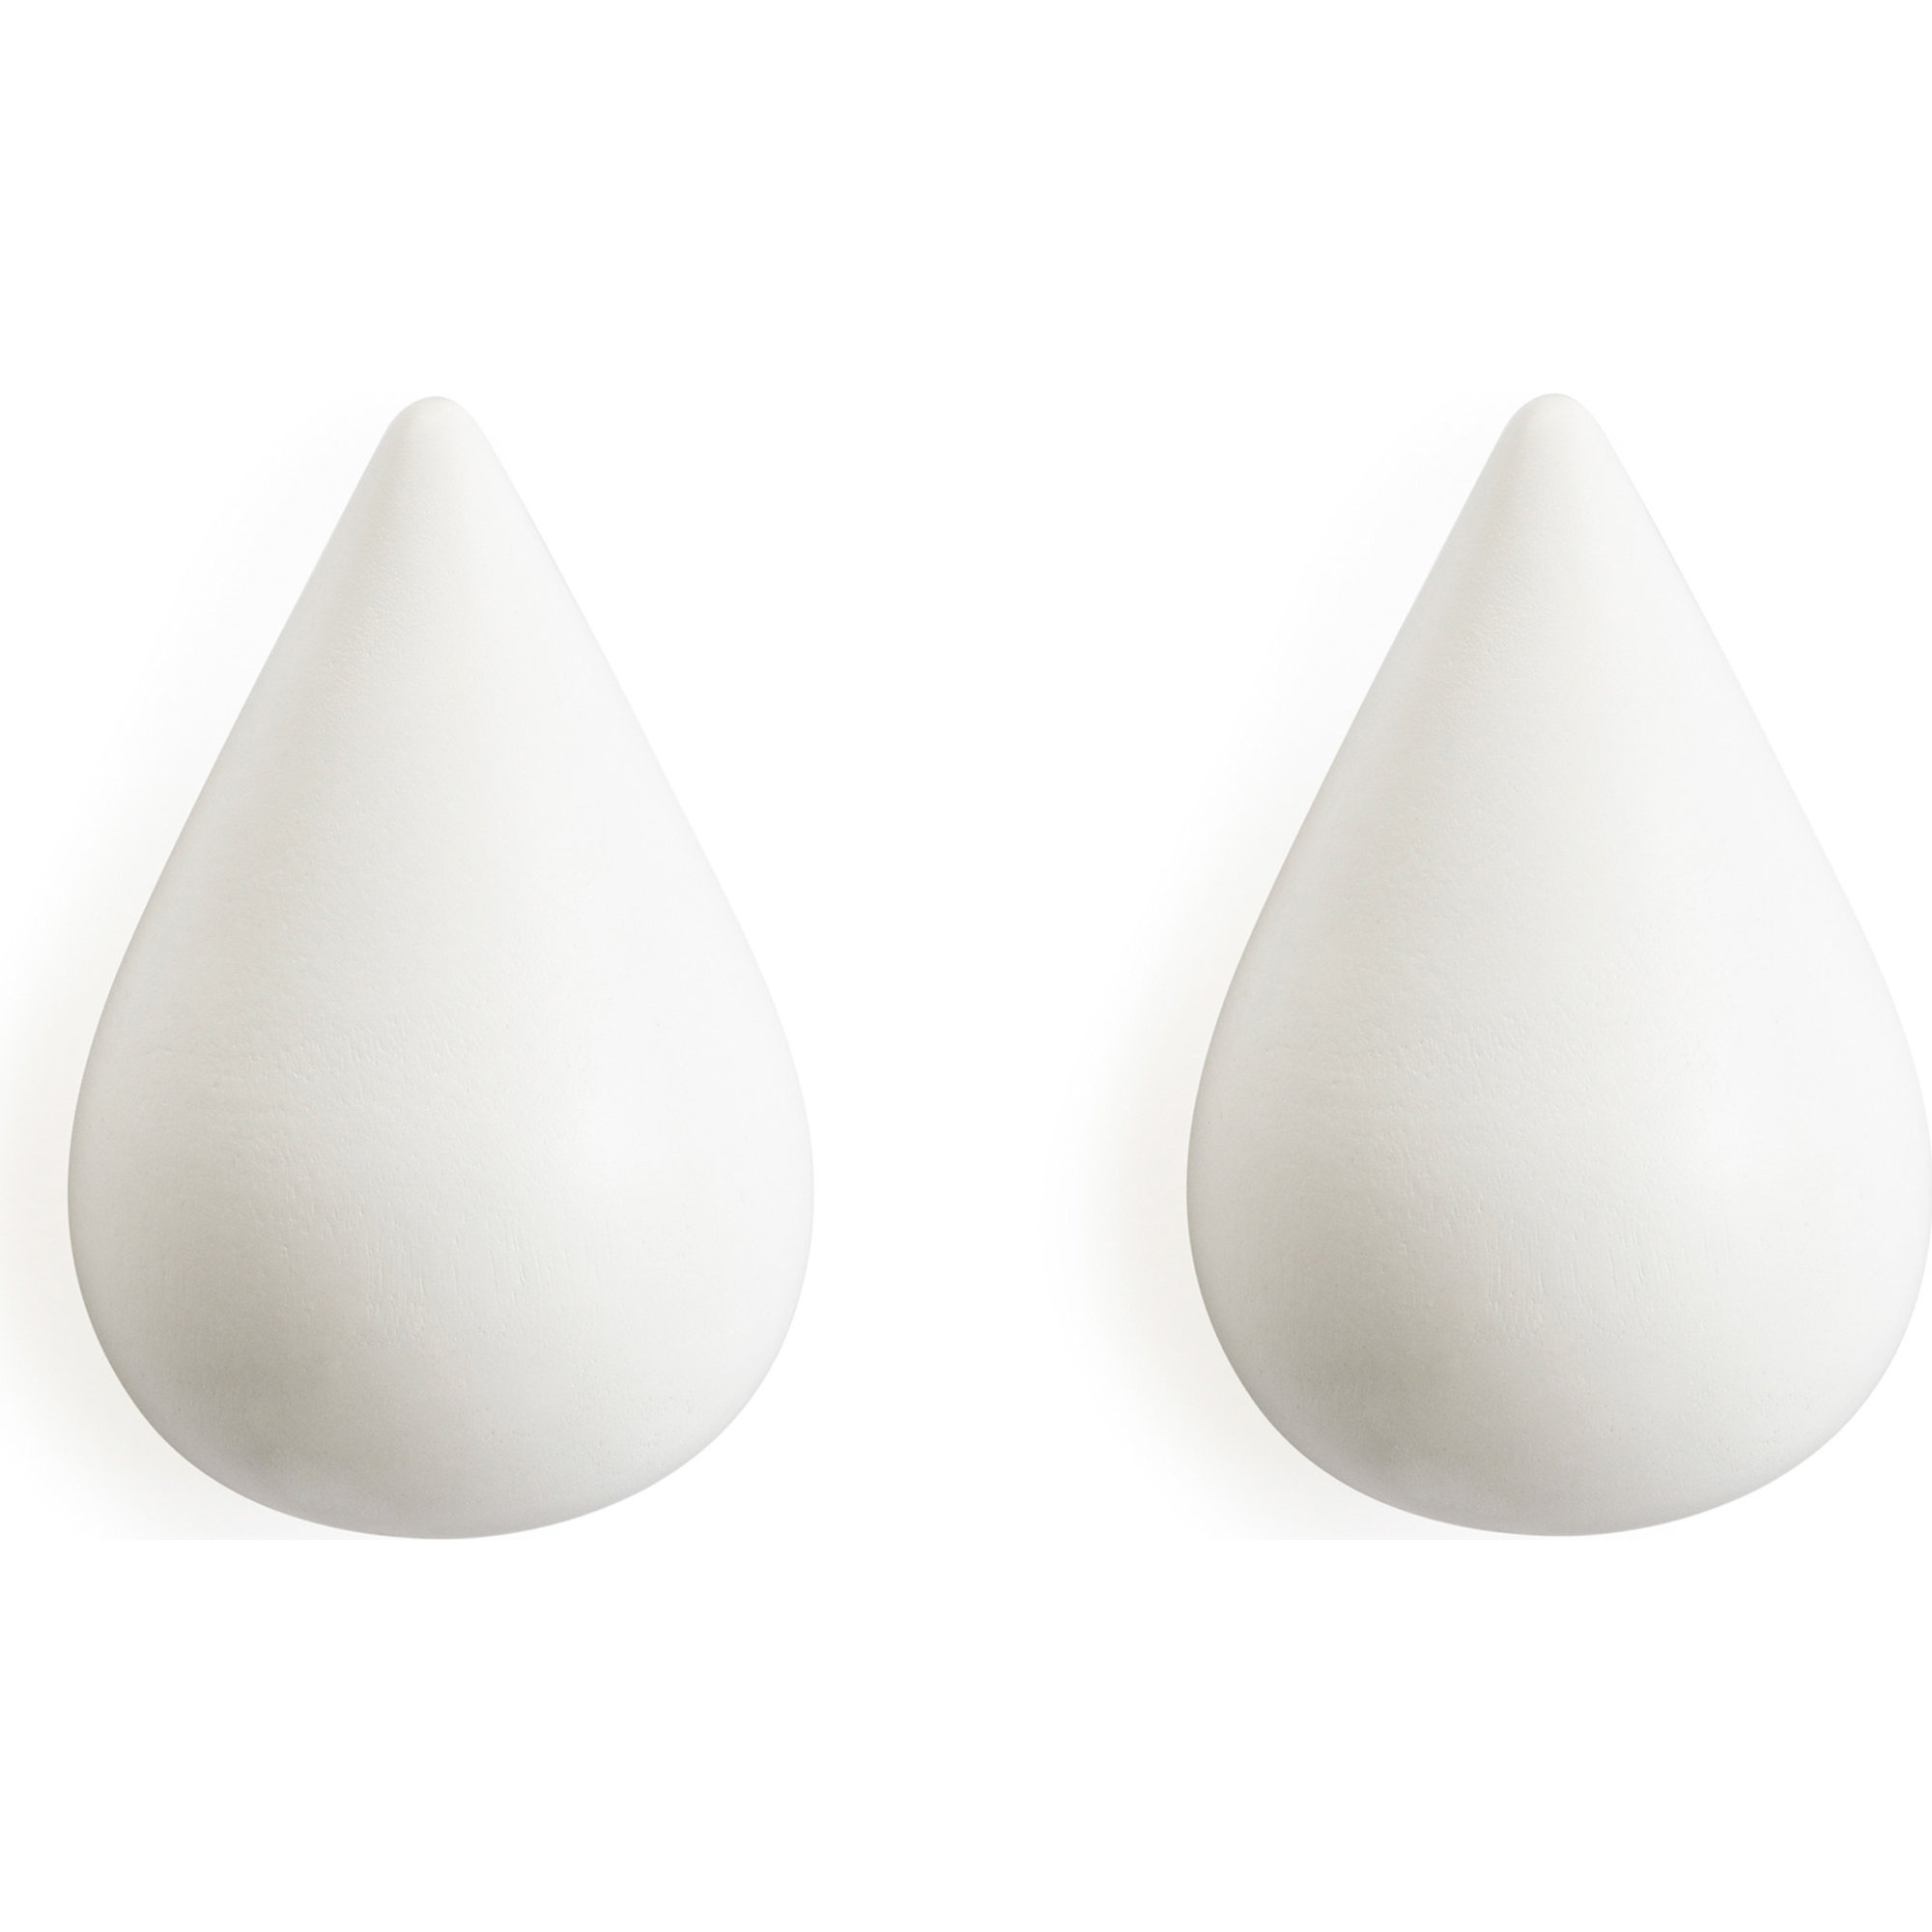 Normann Copenhagen Dropit Hooks Small – 2 pcs Whit